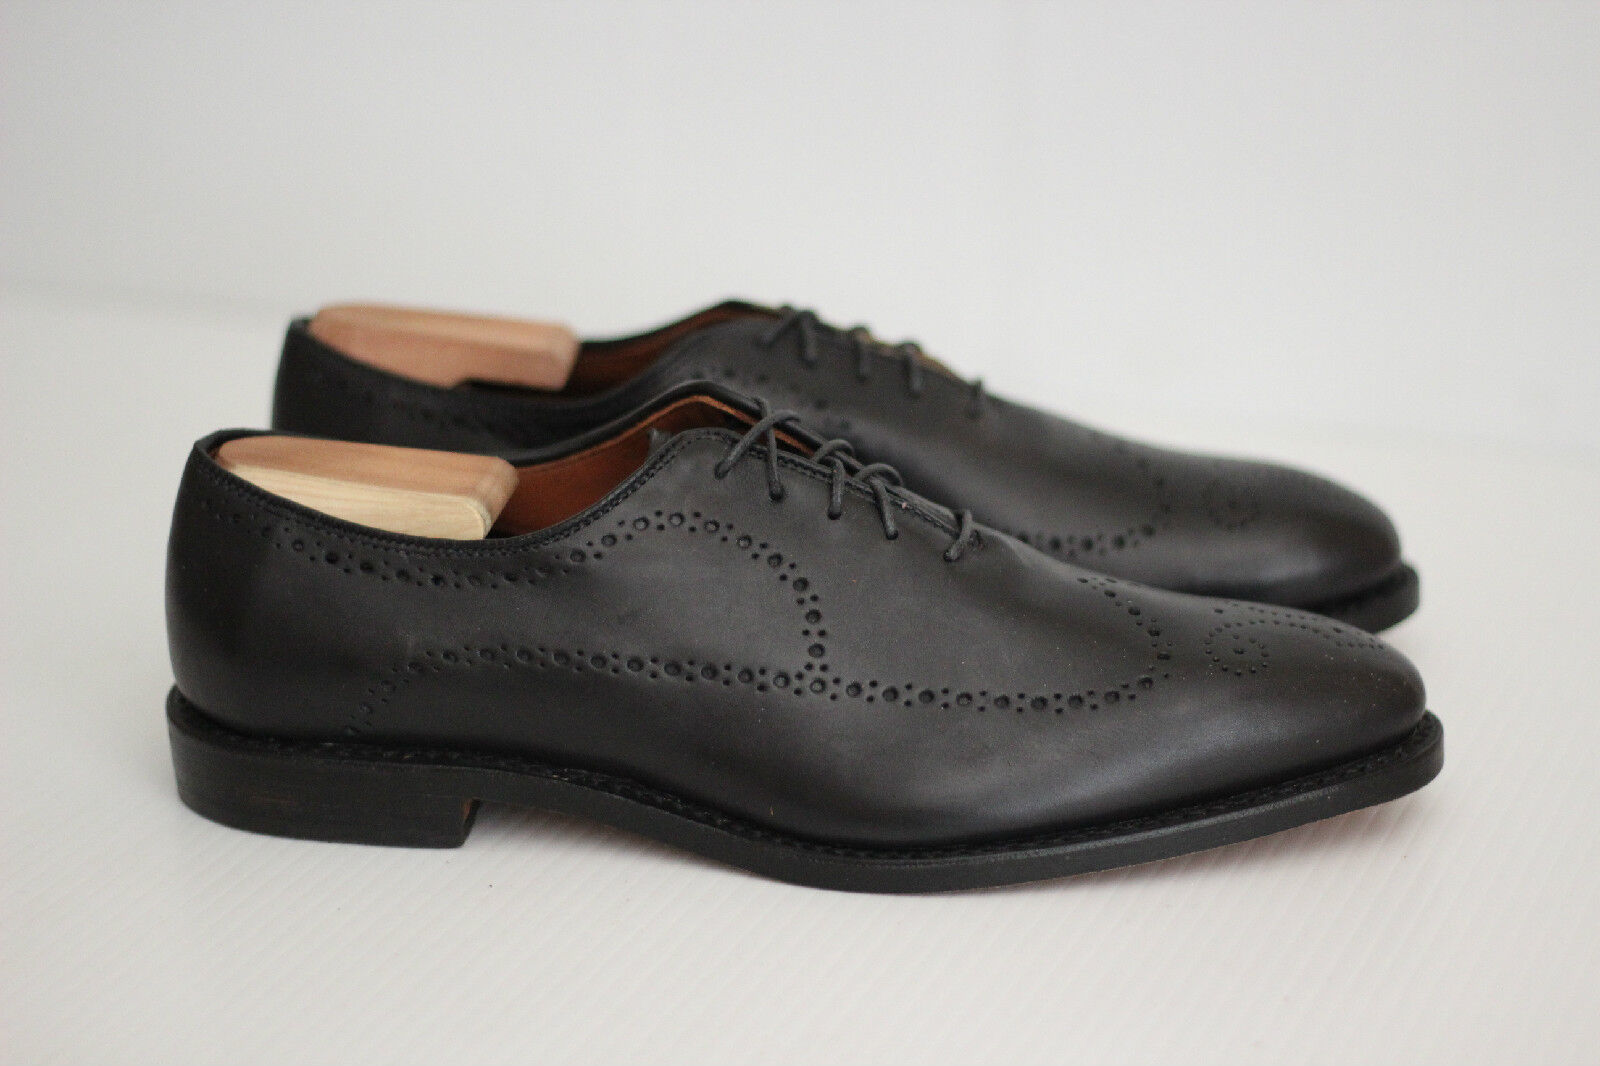 NEW Allen Edmonds 'Fairfax' Oxford - nero - Dimensione 9 D  (W94)